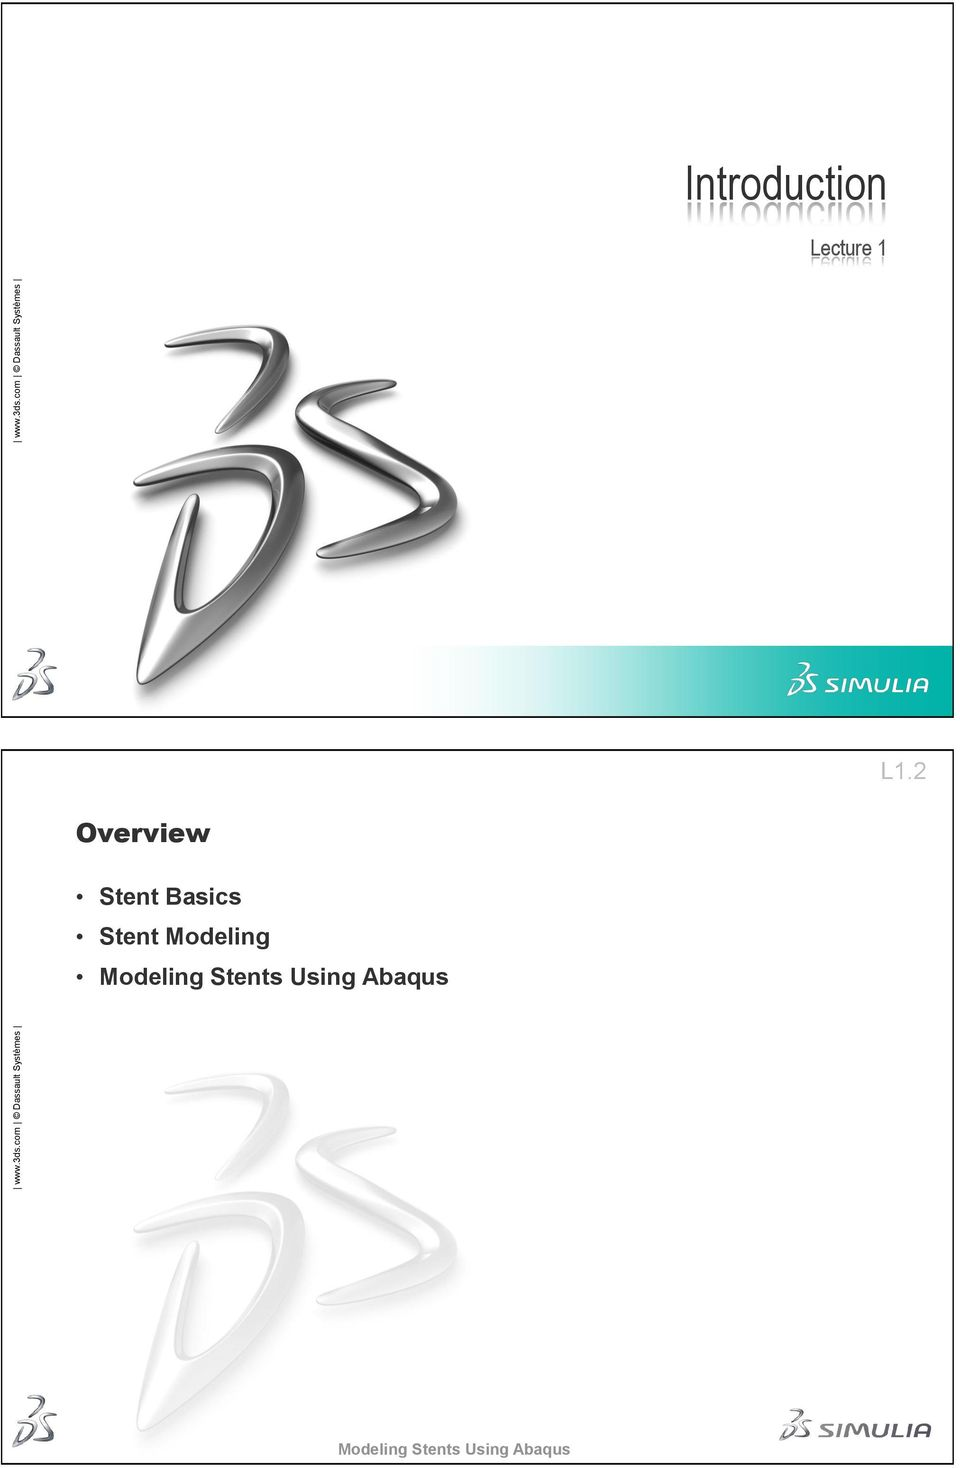 Modeling Stents Using Abaqus - PDF